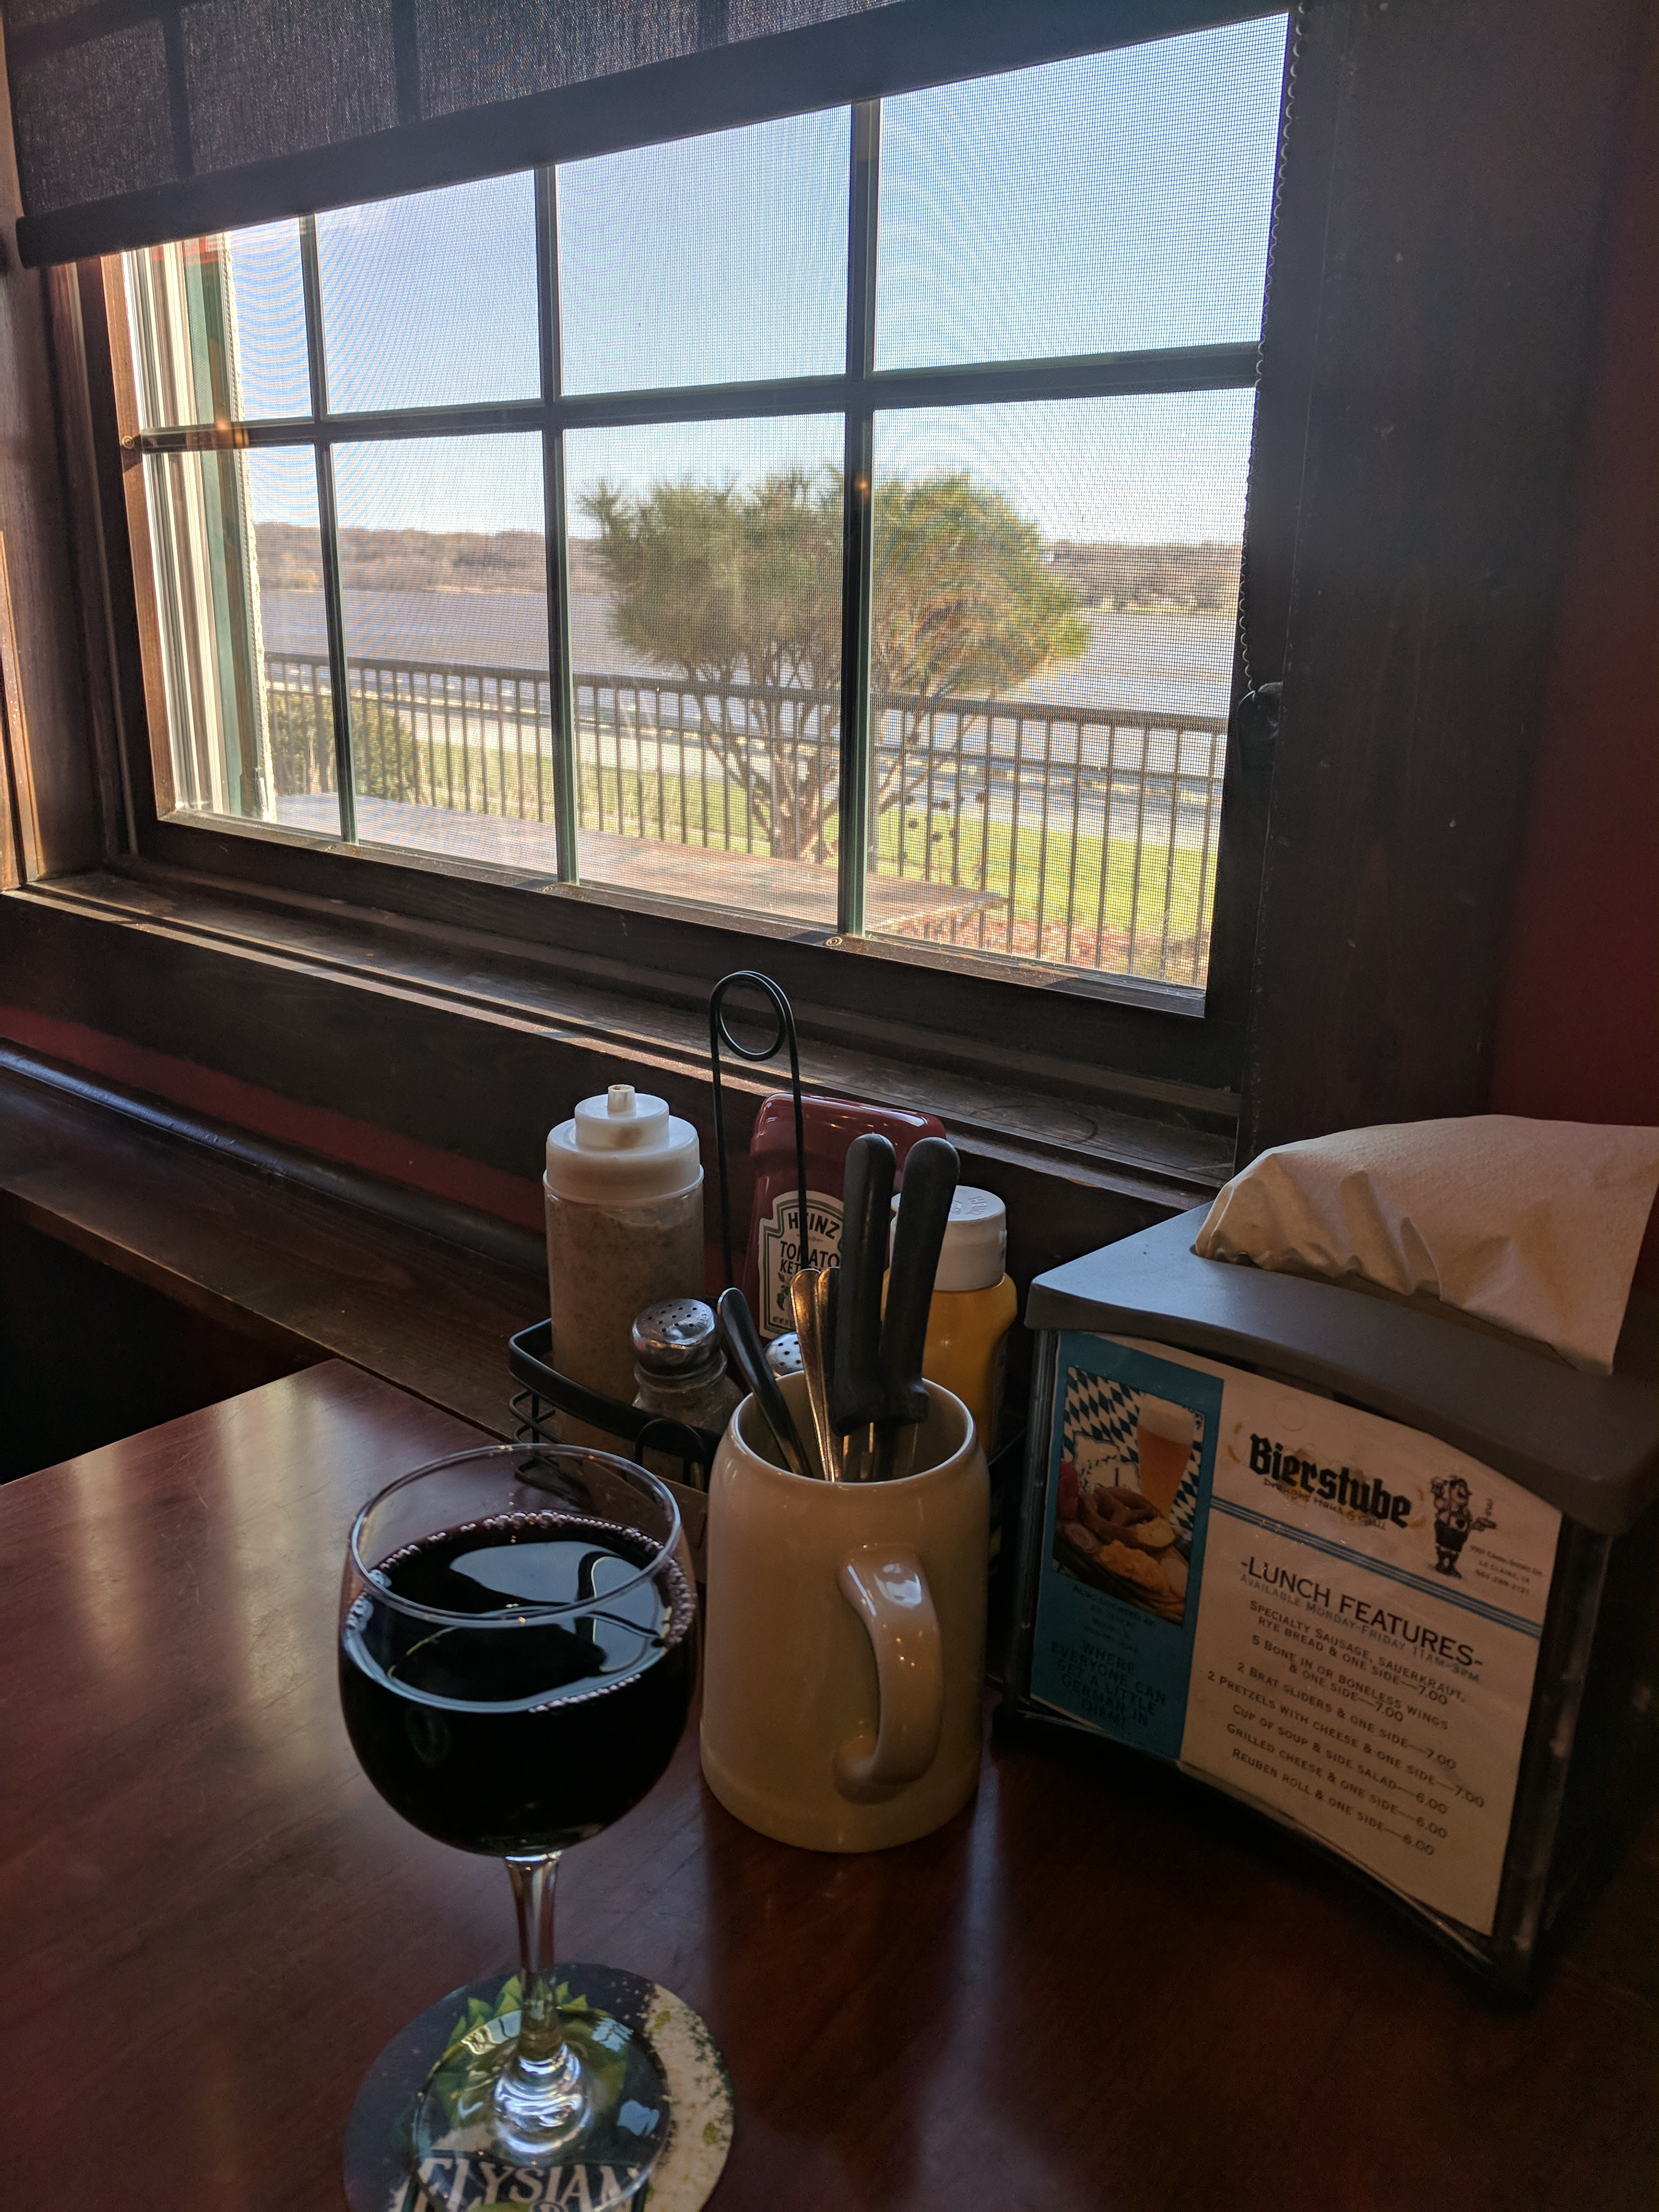 Bierstube – A German – American Pub with a View